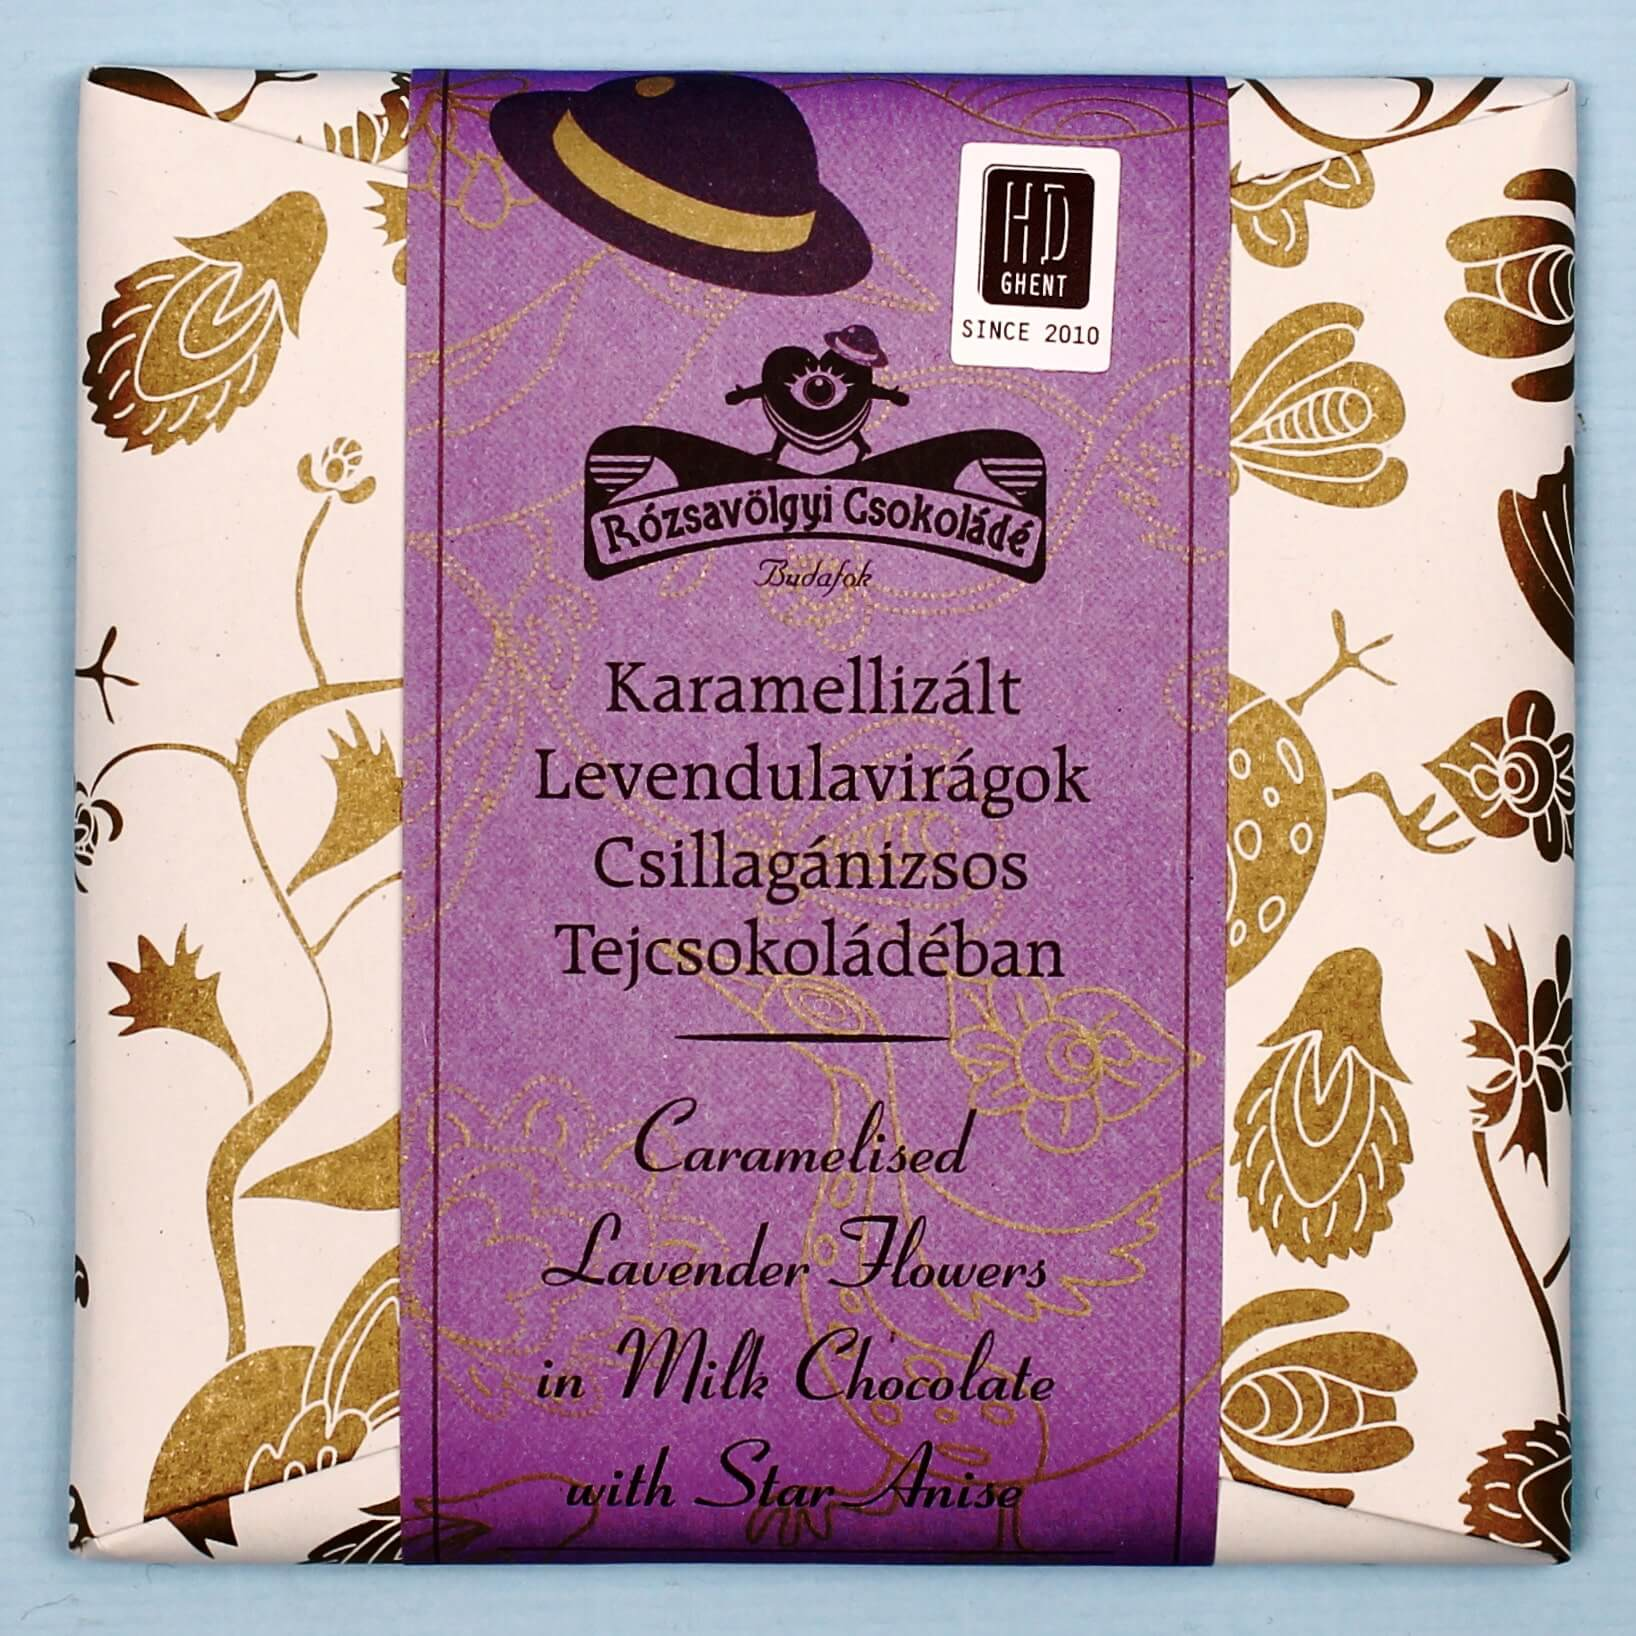 hd ghent rozsavolgyi csokolade caramelised lavender flowers in milk chocolate with star anise 40